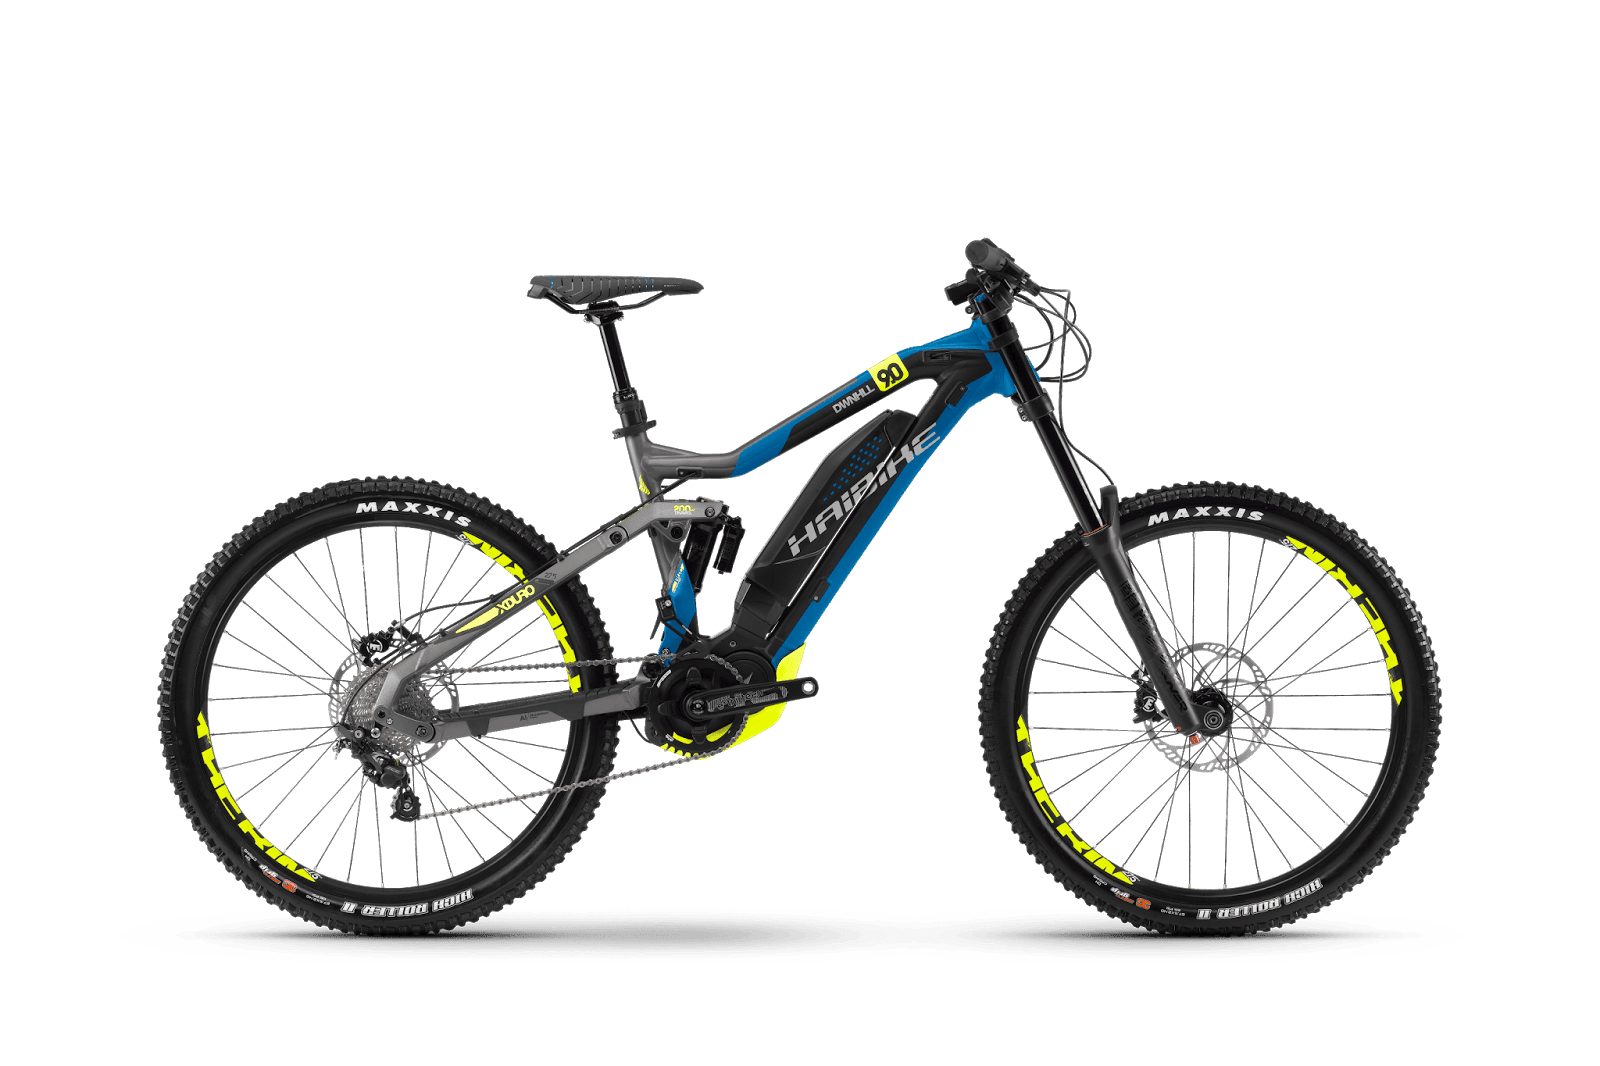 New Haibike Xduro Dwnhll 9 0 Electric Bike